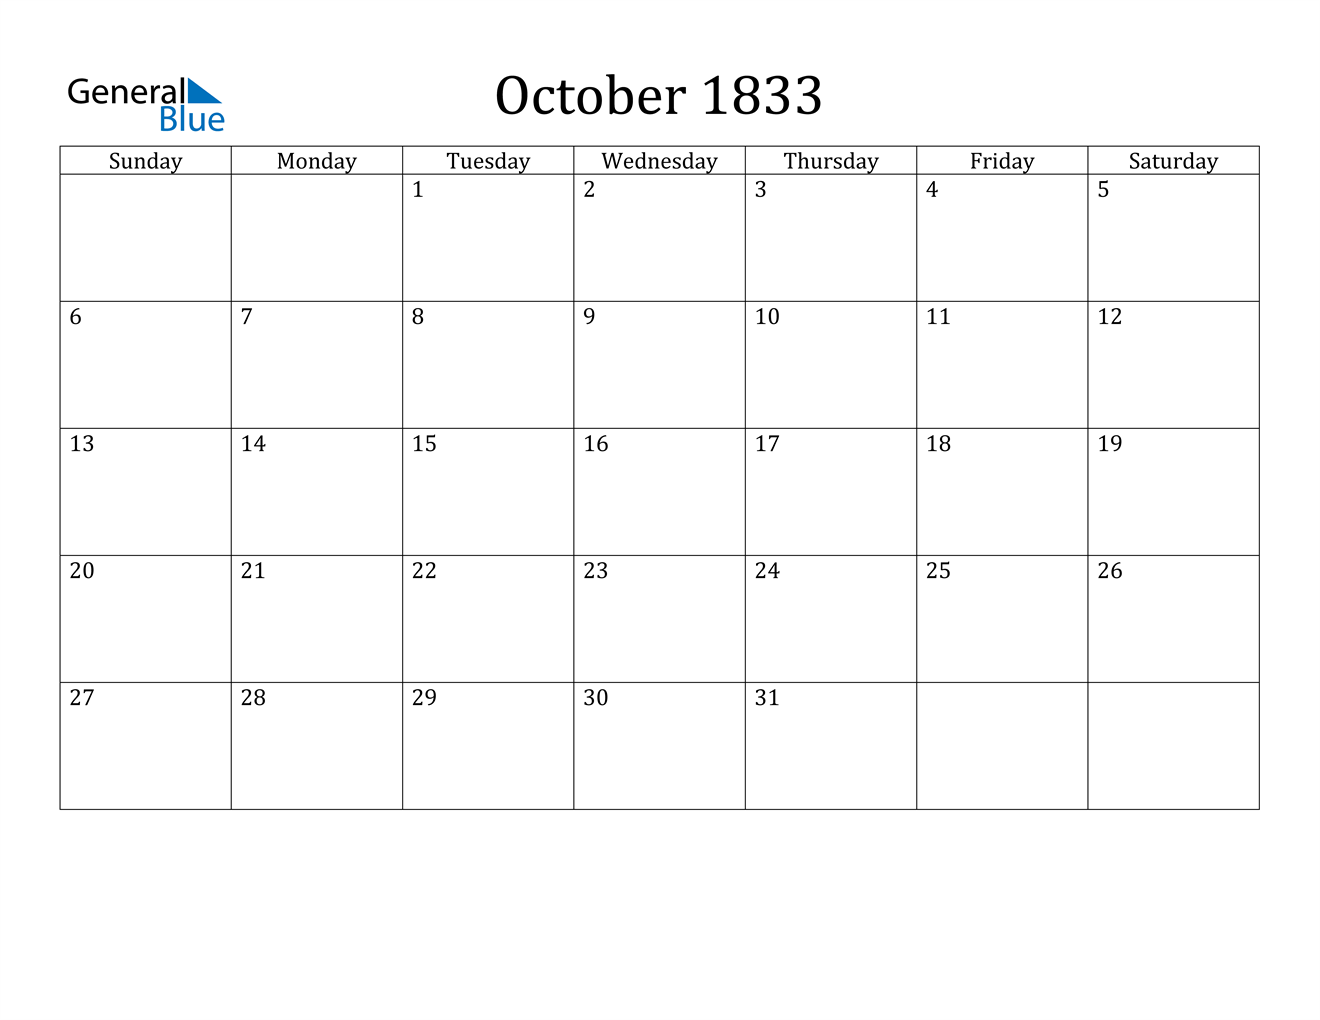 Image of October 1833 Calendar